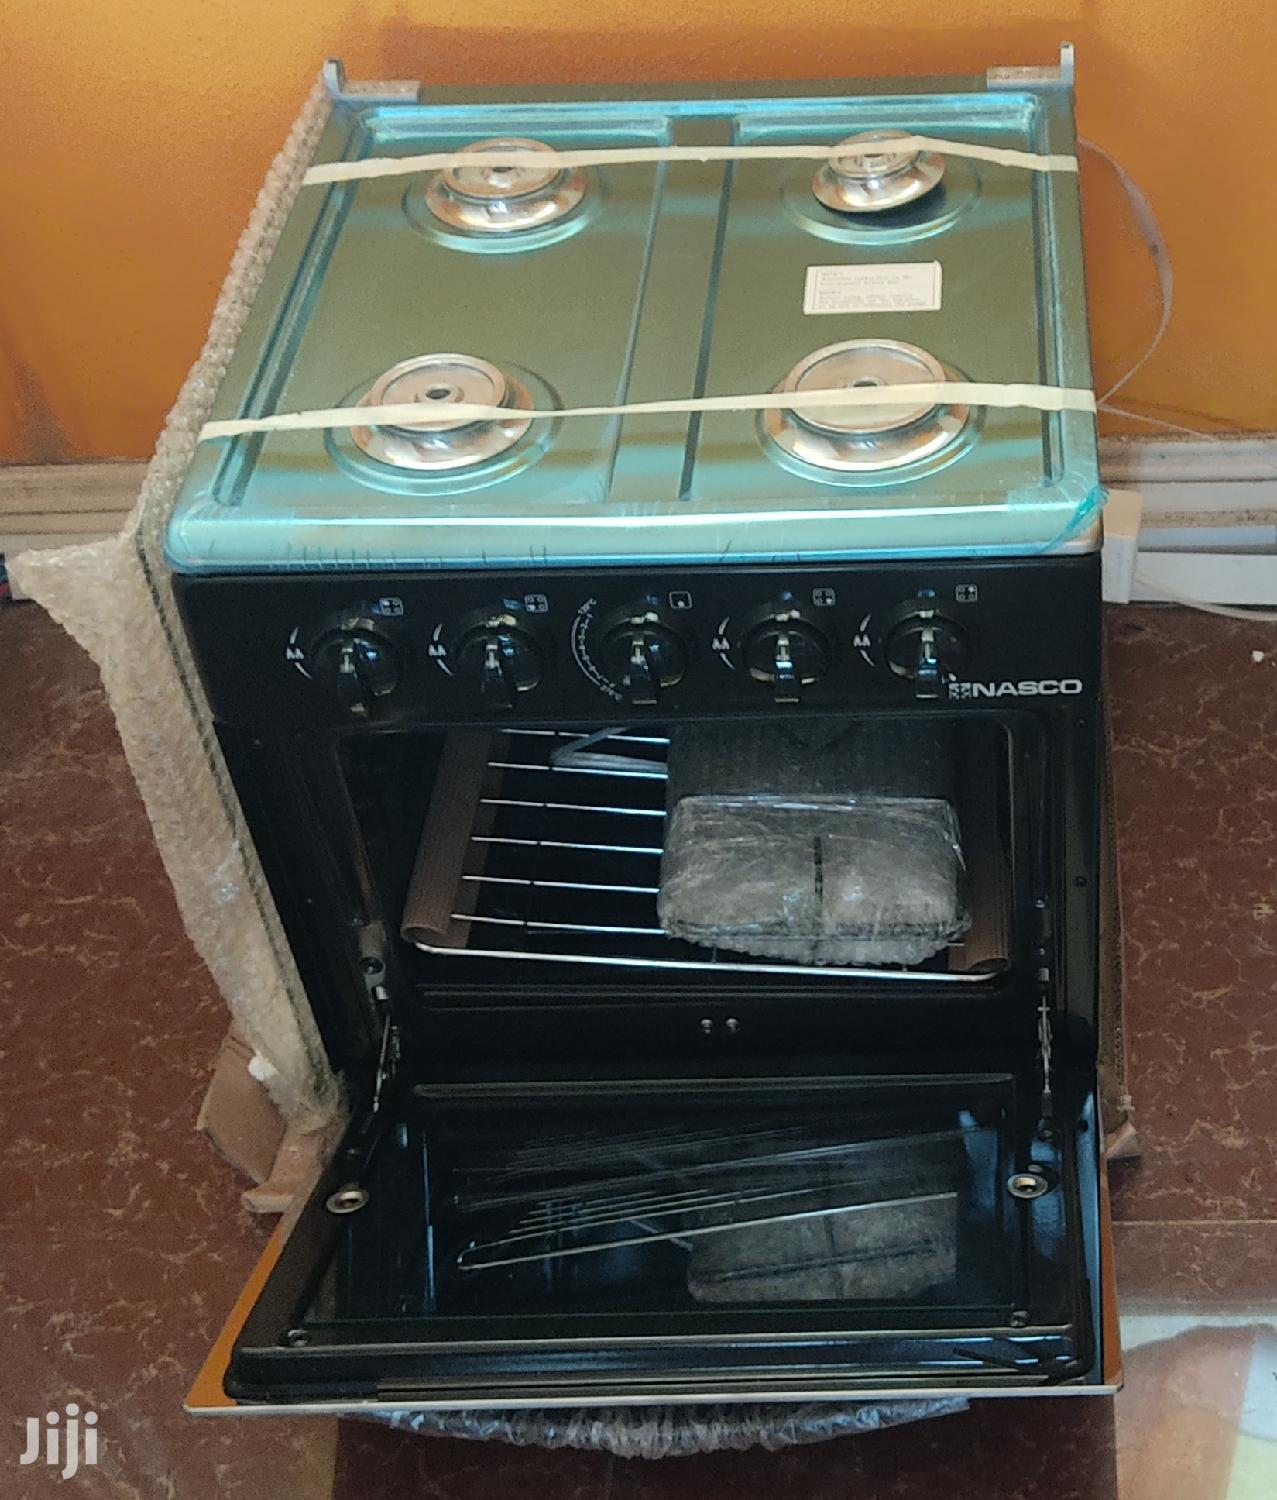 Nasco Table Gas Stove With Oven